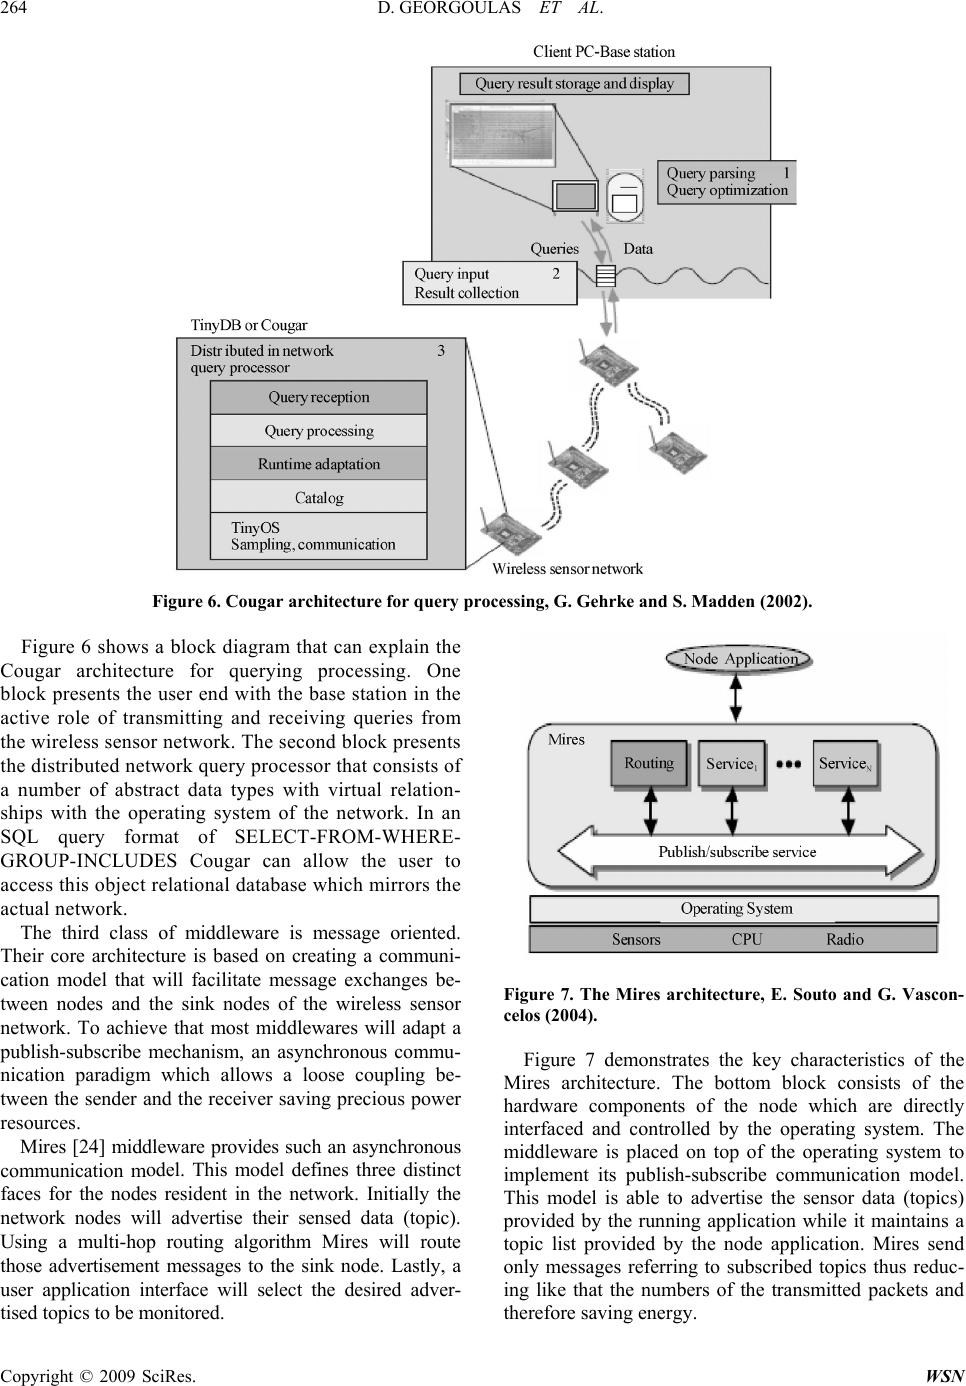 Wireless Sensor Network Management and Functionality: An